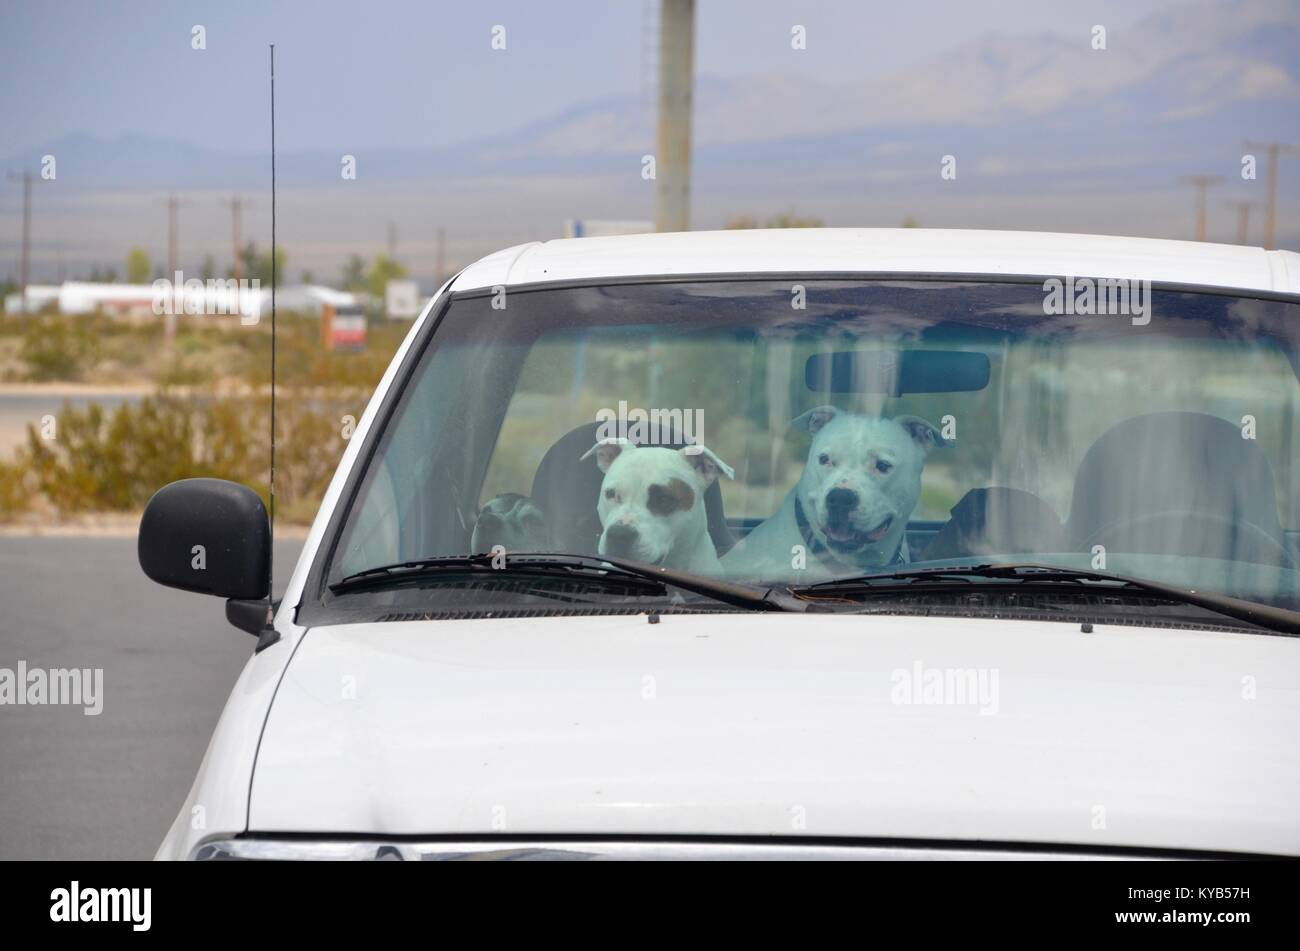 three bull terriers in the front seat of a white car nevada - Stock Image